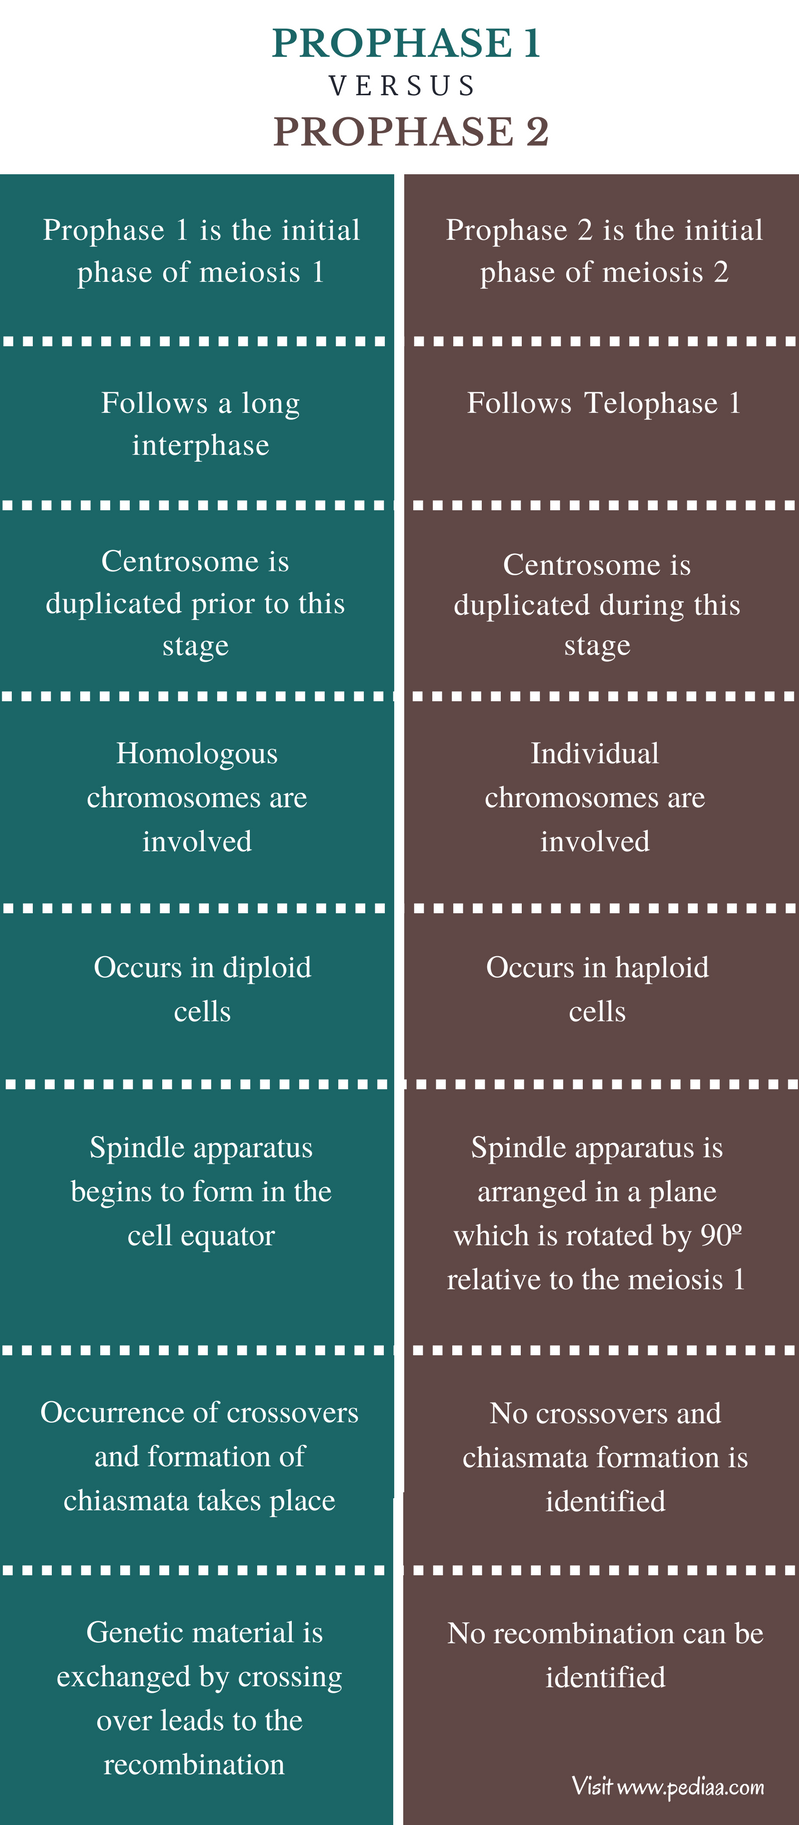 Difference Between Prophase 1 and 2 - Comparison Summary